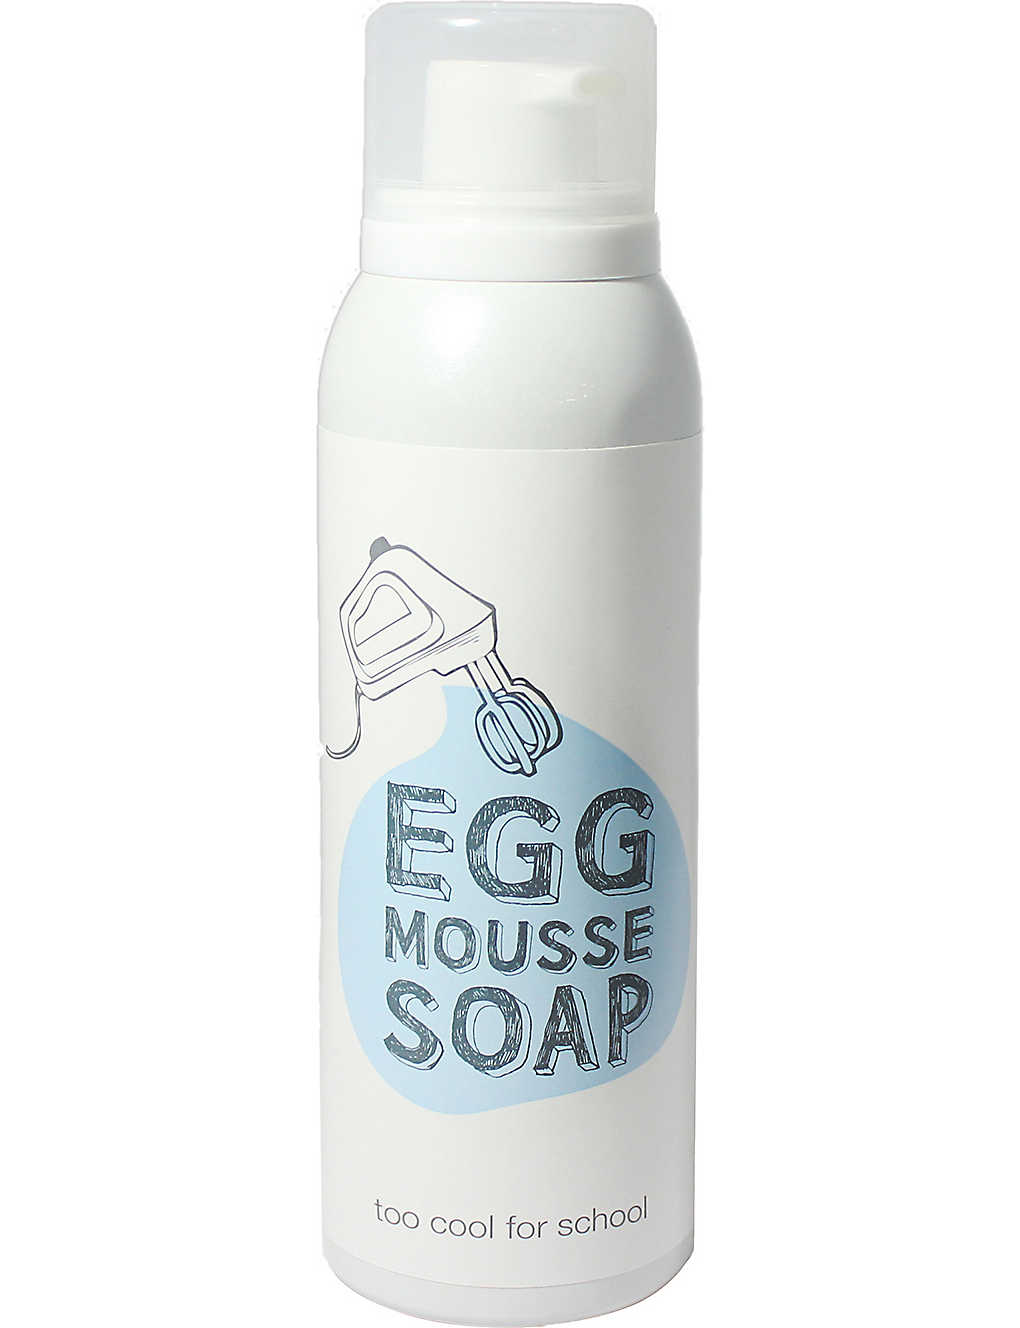 TOO COOL FOR SCHOOL: Egg mousse soap facial cleanser